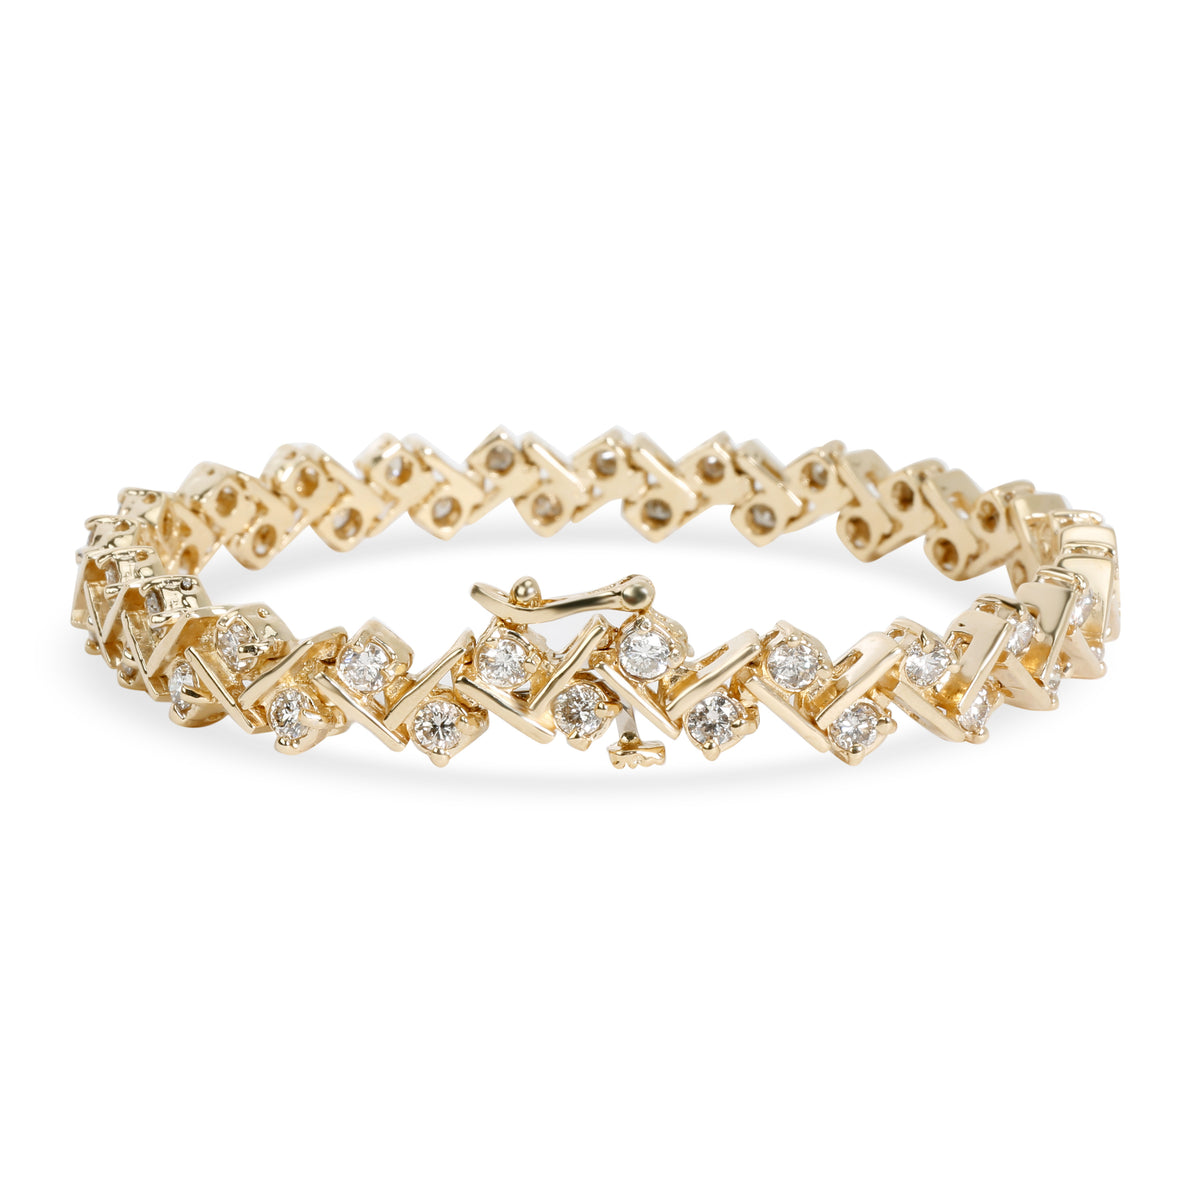 Diamond Tennis Bar Bracelet in 14K Yellow Gold 2.76 CTW